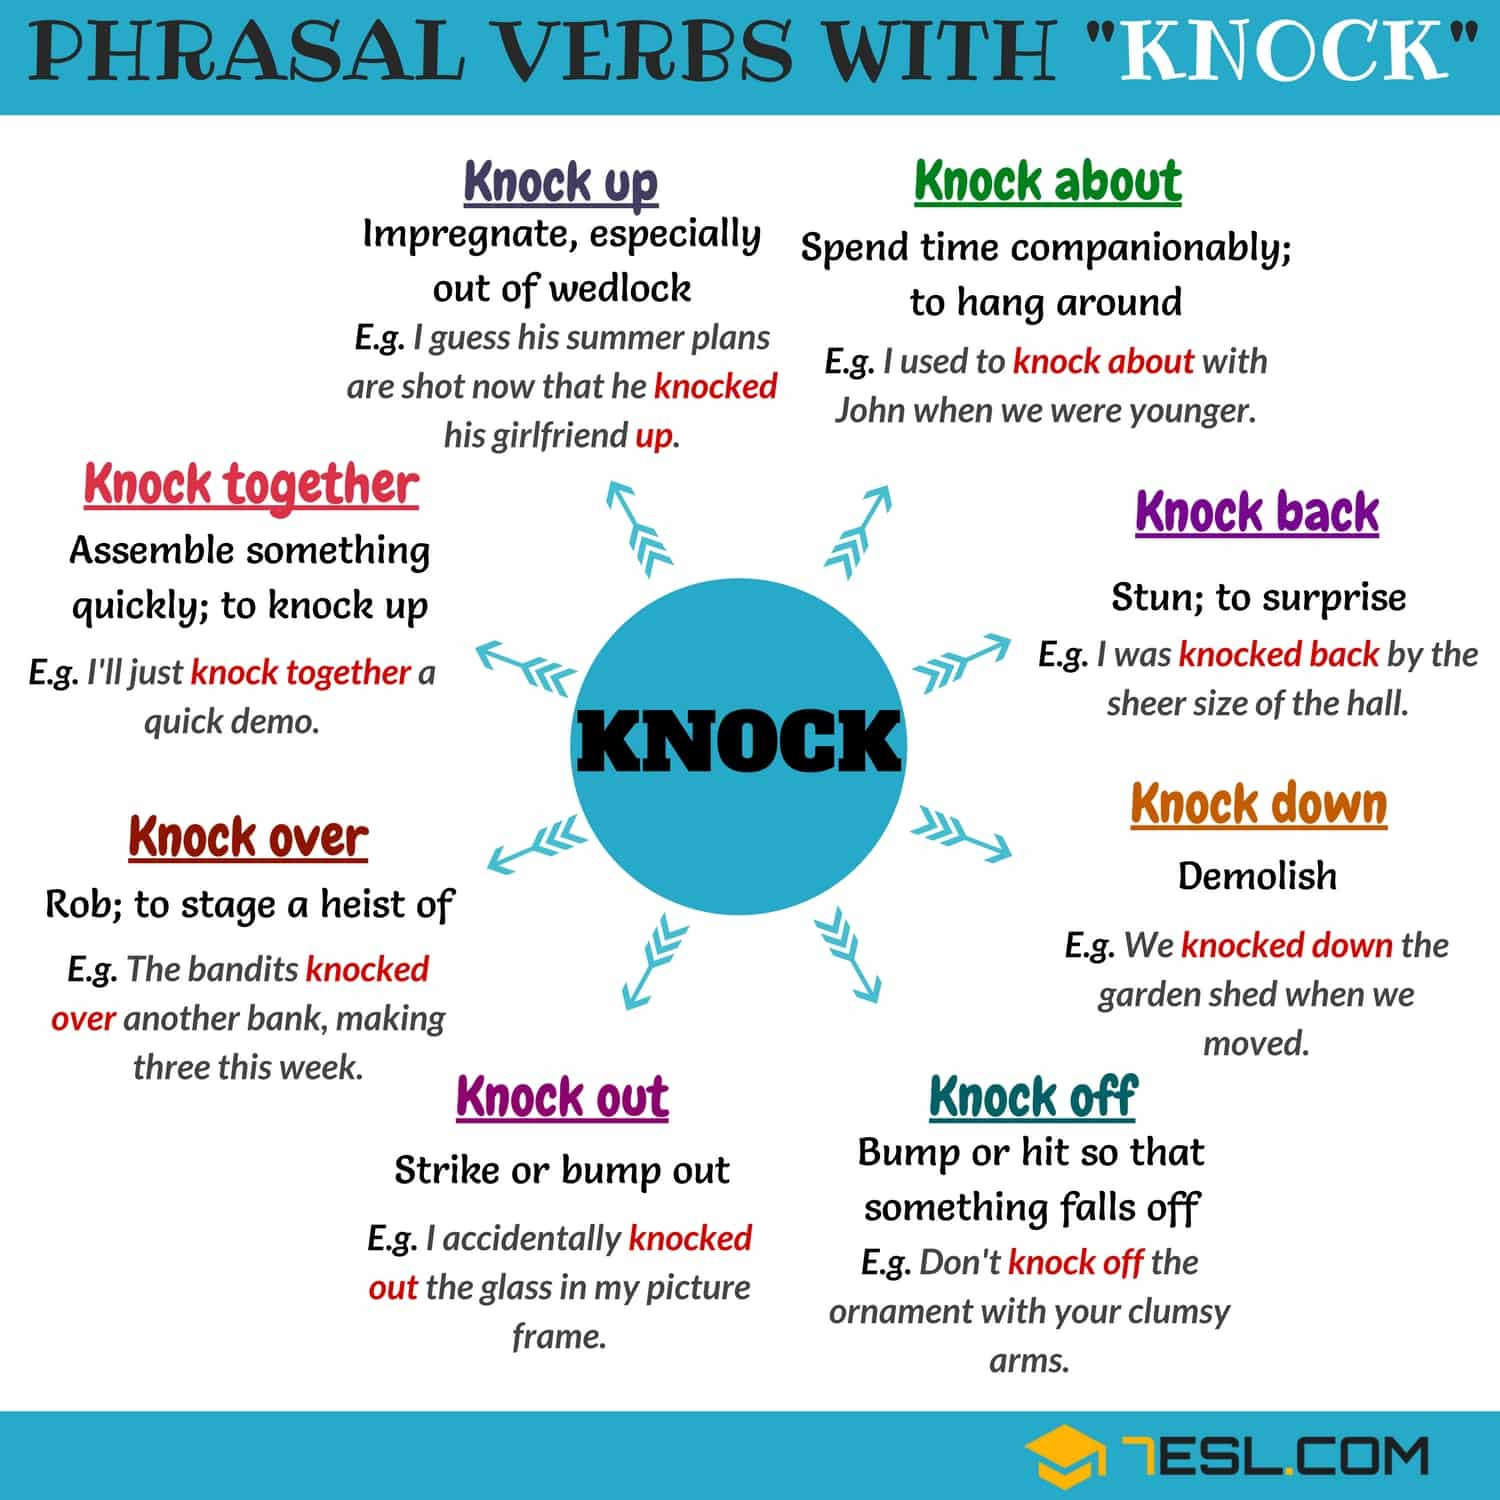 phrasal verbs with KNOCK